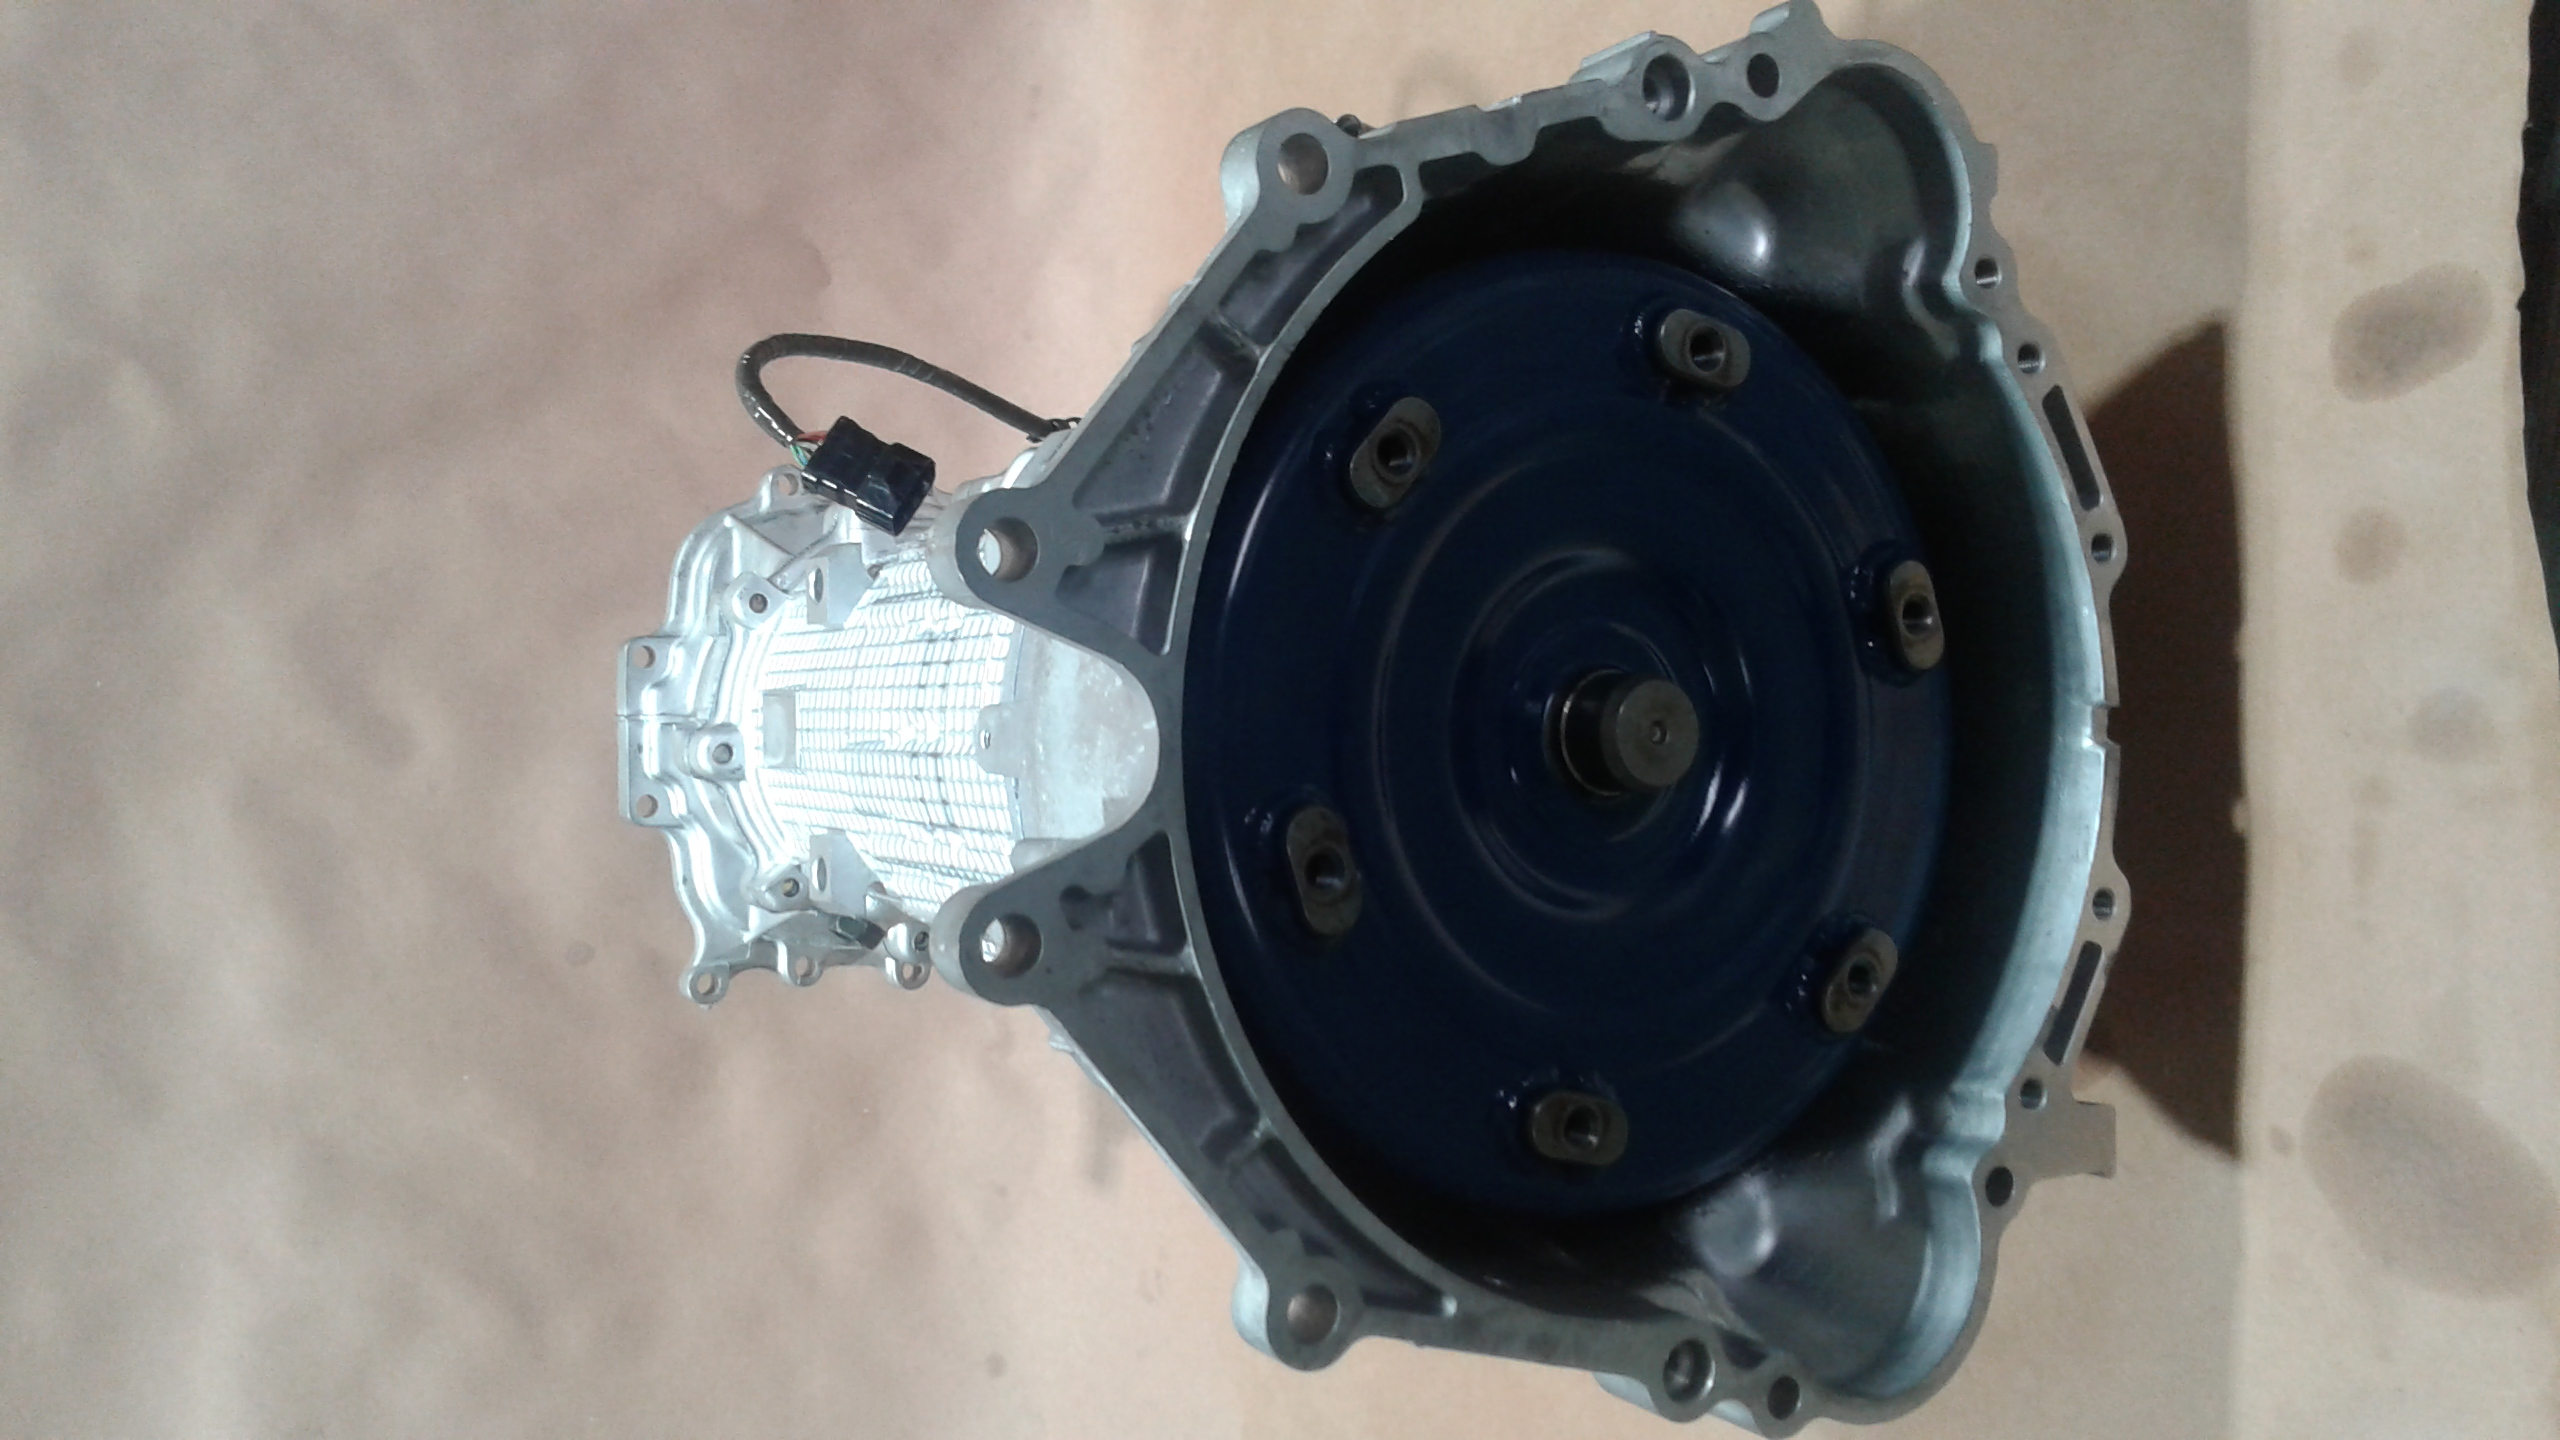 Rebuilt 2001 2002 Mitsubishi Montero Limited 5spd V5a51 Automatic Transmission Pictures Of Transmissions Are For Only Reference Not Actual Product